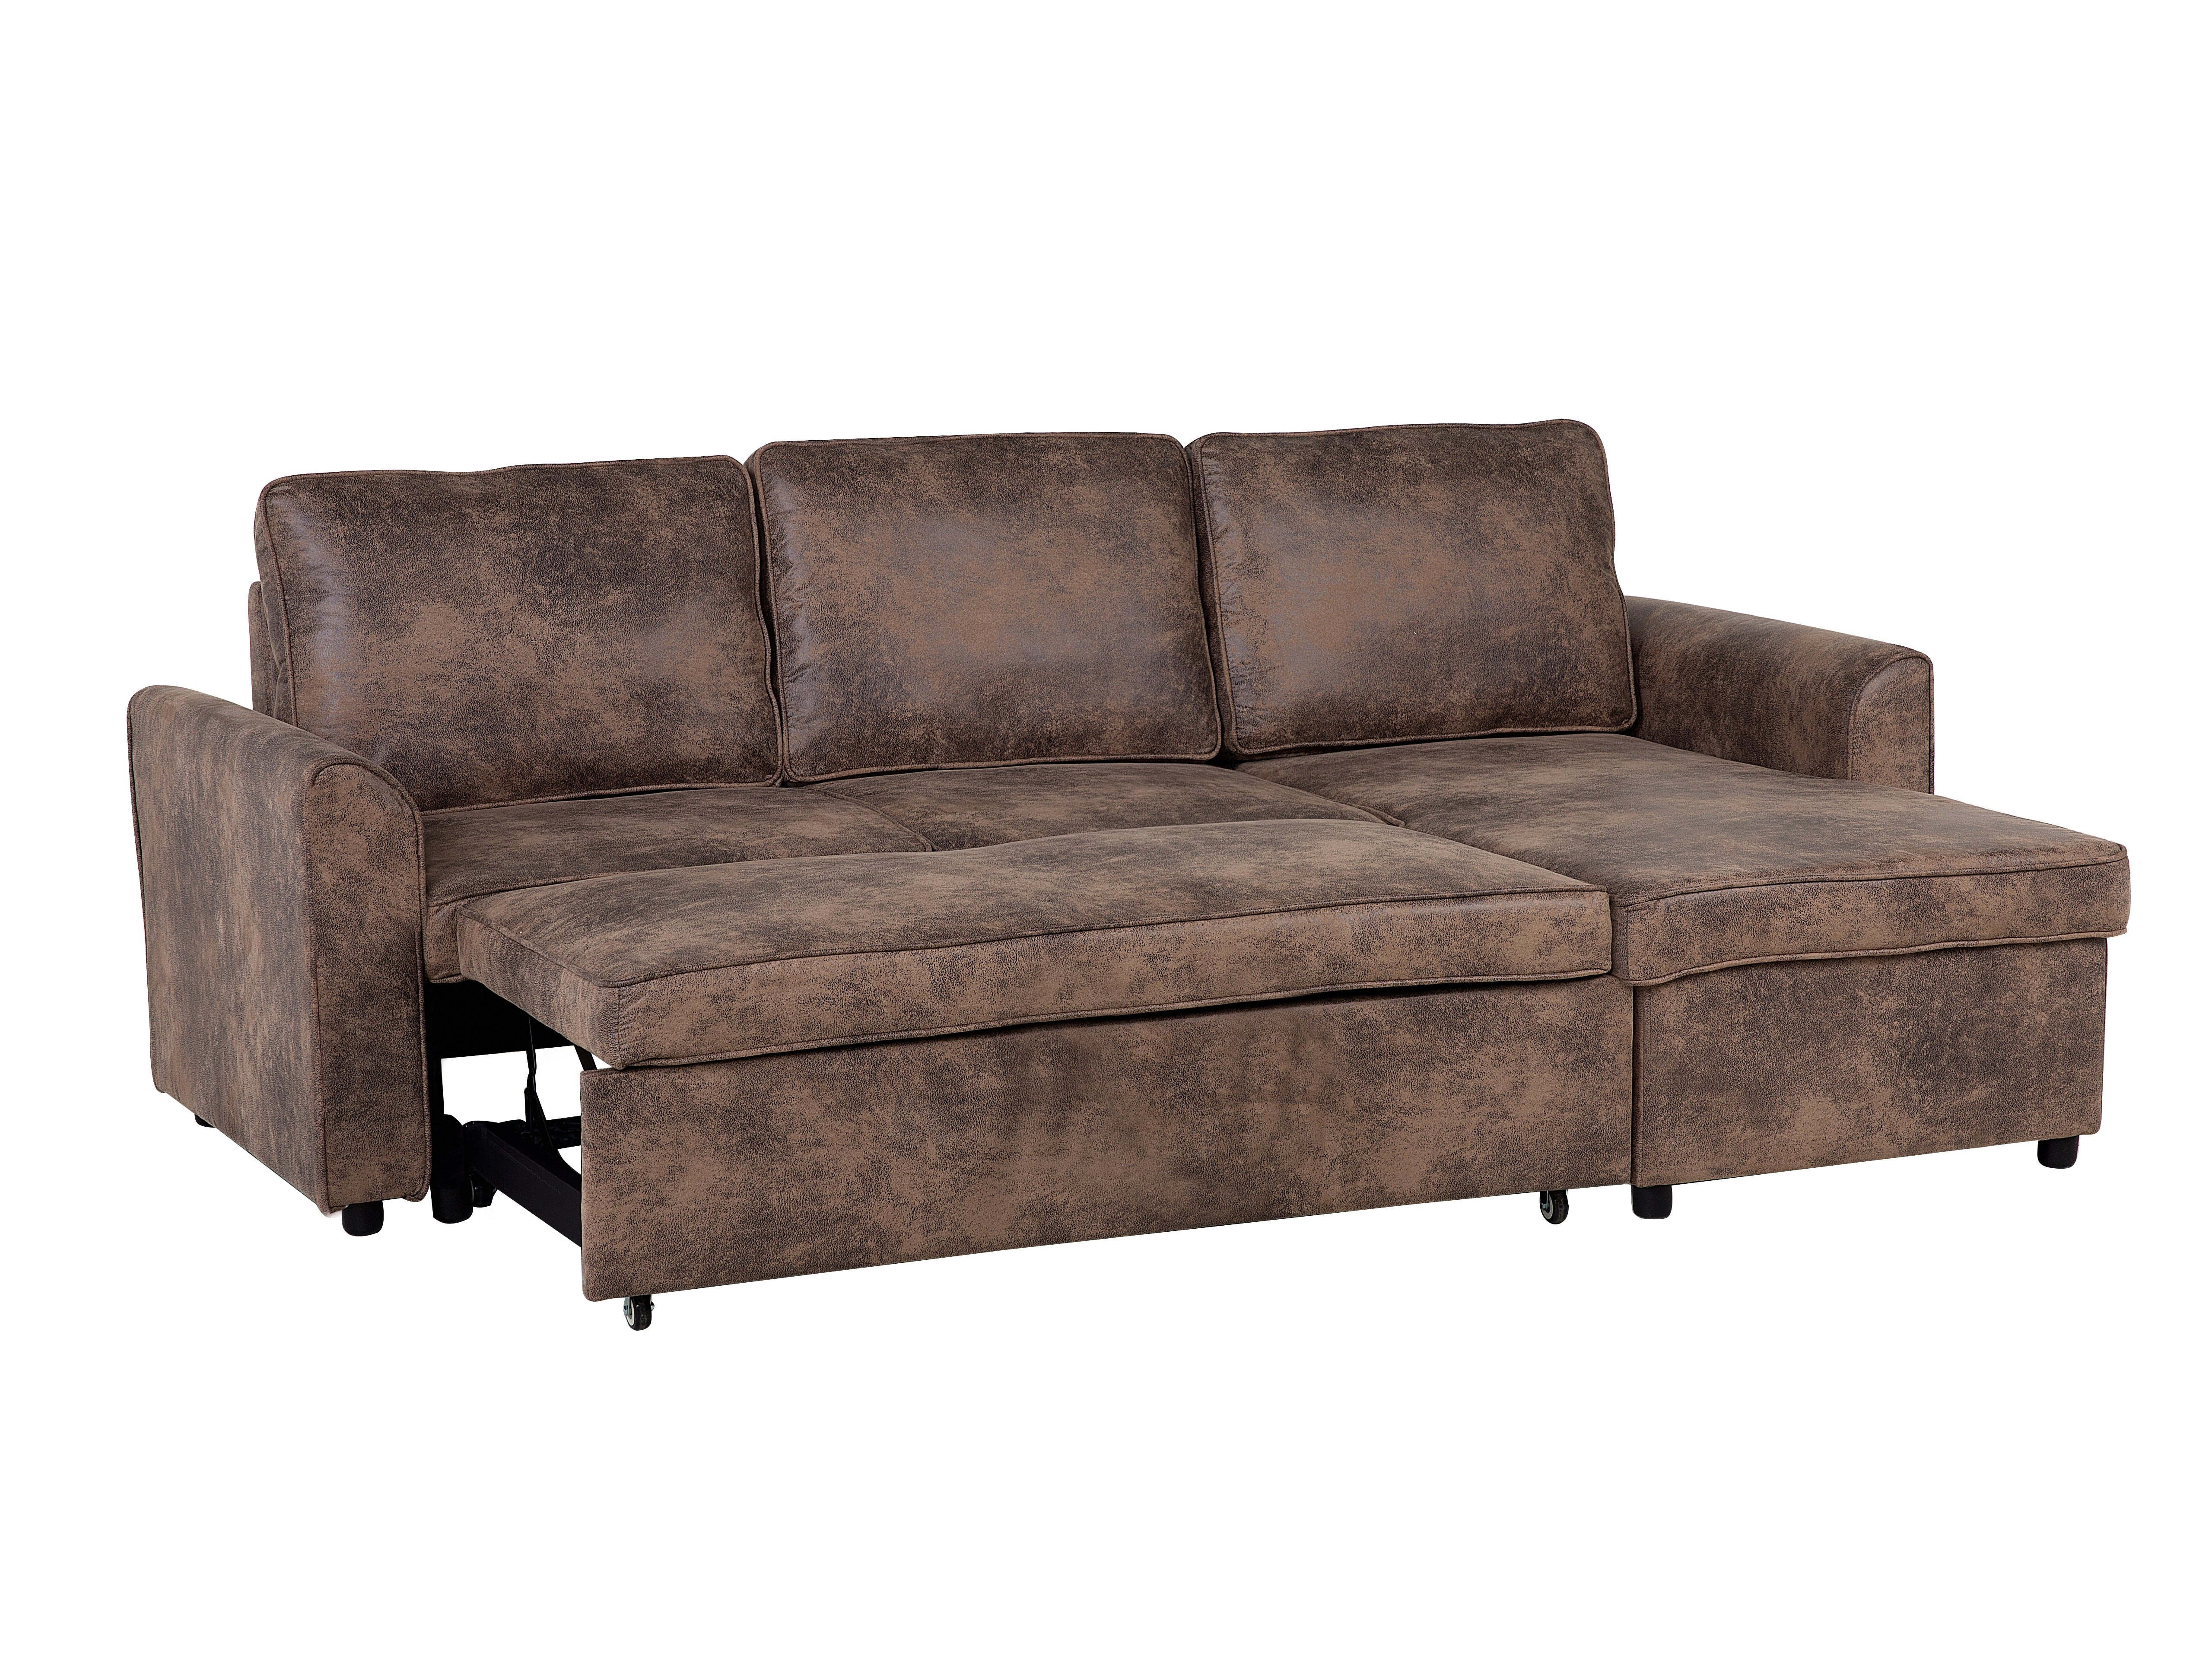 Left Hand Faux Leather Sectional Sofa Bed with Storage Brown NESNA_720308